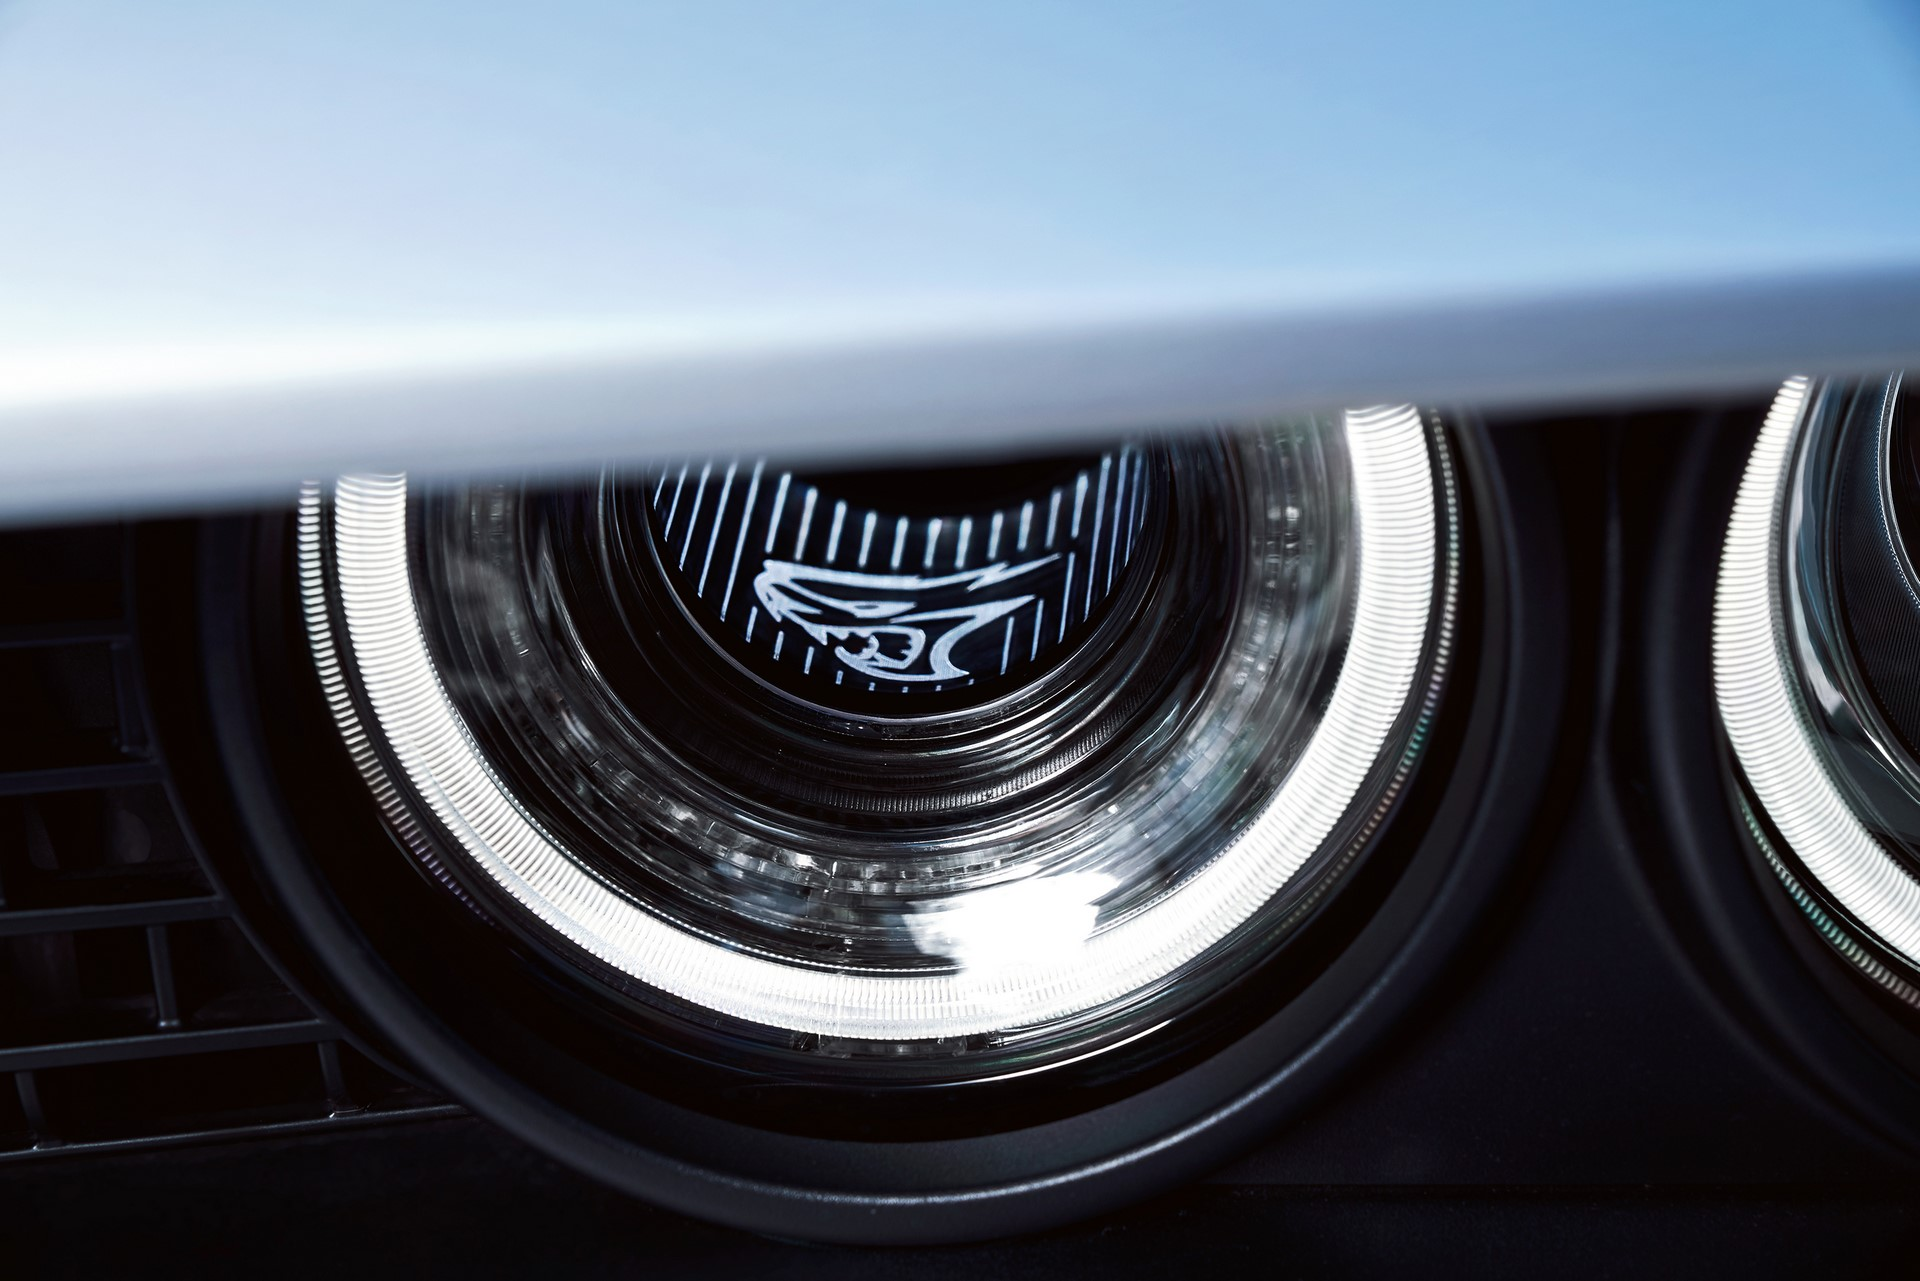 Driver-side functional Air-Catcher™ headlamp of 2019 Dodge Challenger SRT Hellcat Redeye Widebody